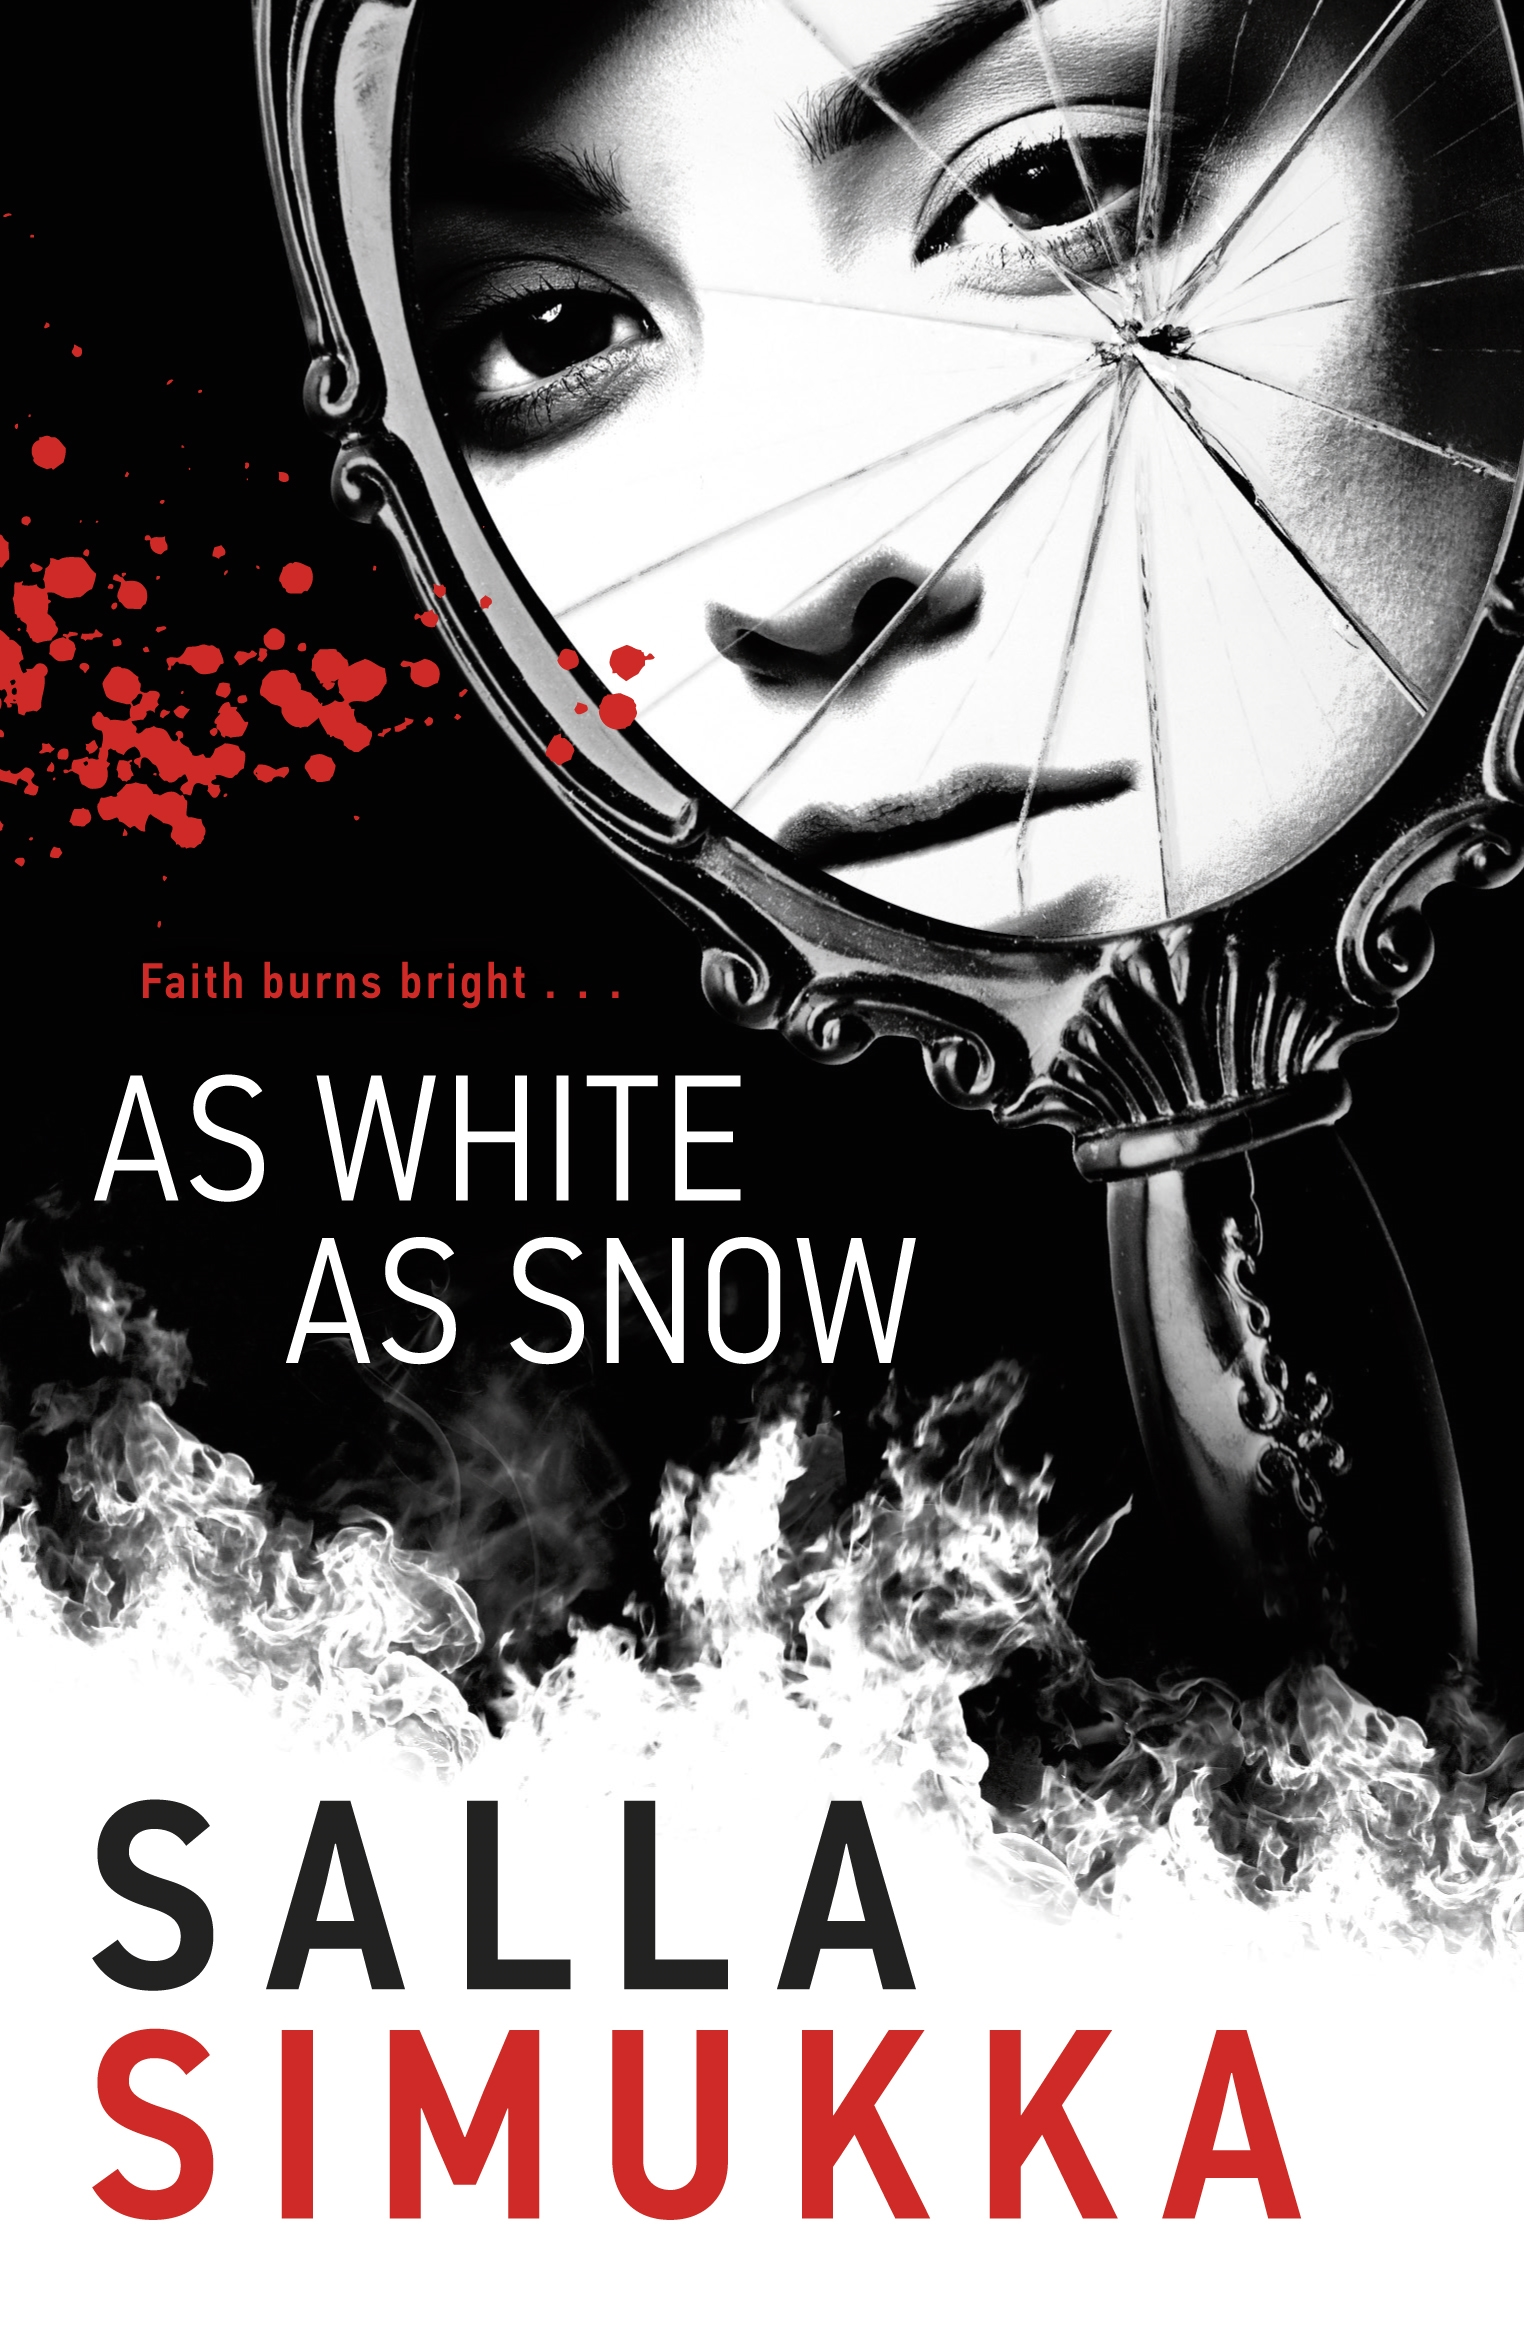 As White as Snow by Salla Simukka